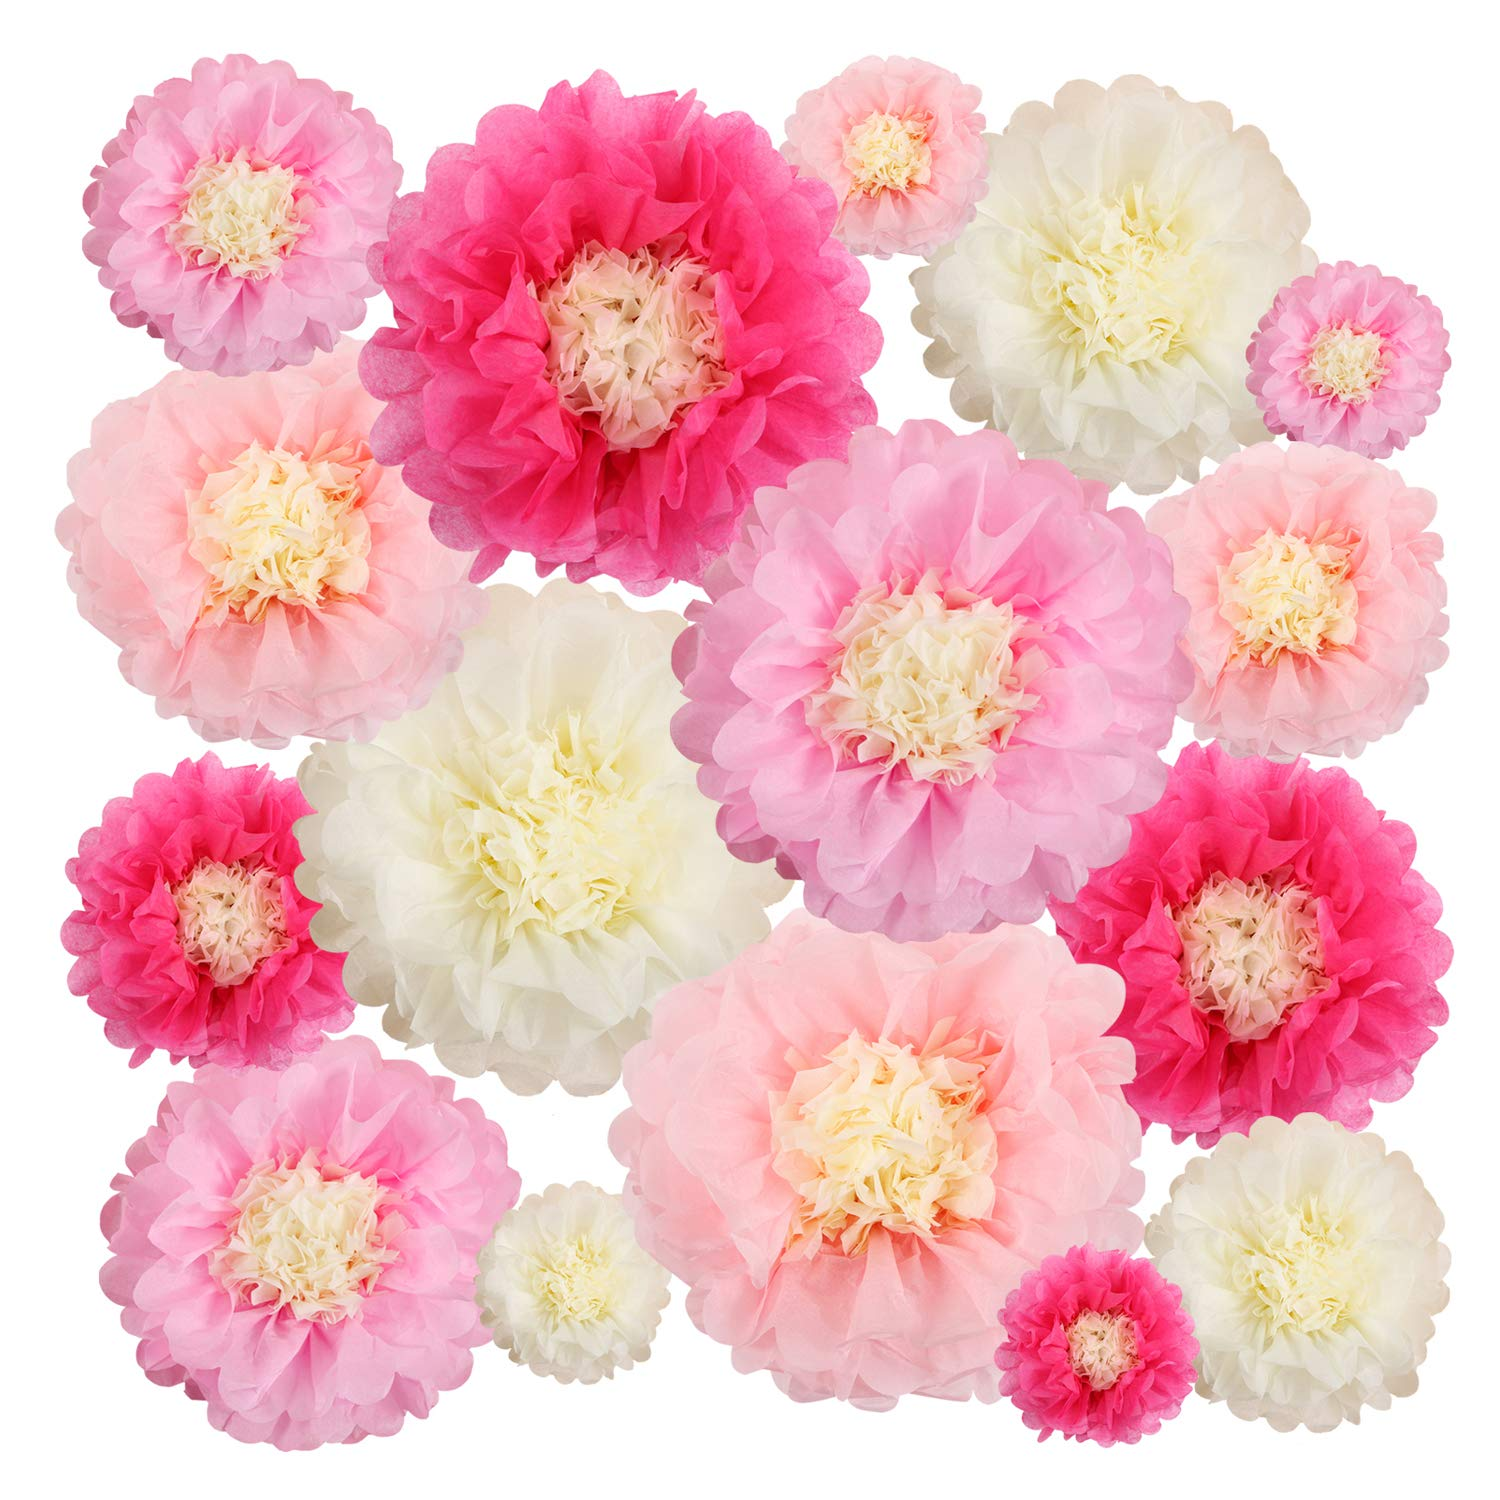 Aunifun 16 Pieces Paper Flower Tissue Paper Chrysanth Flowers DIY Crafting for Wedding Backdrop Nursery Wall Decoration Multicolor Paper Flower